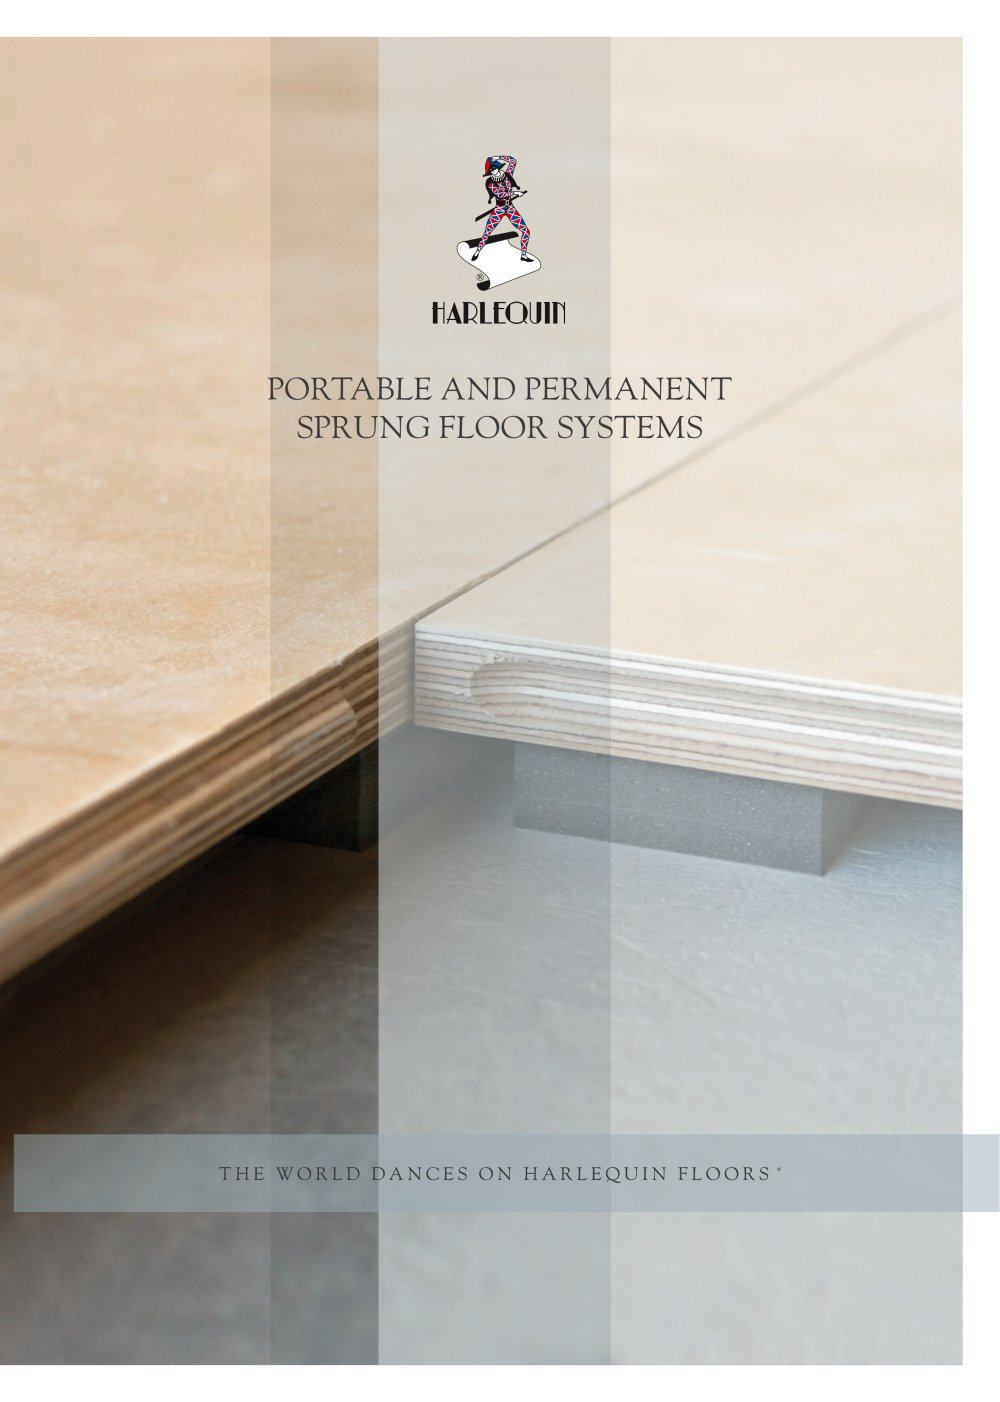 PORTABLE AND PERMANENT SPRUNG FLOOR SYSTEMS - 1 / 12 Pages